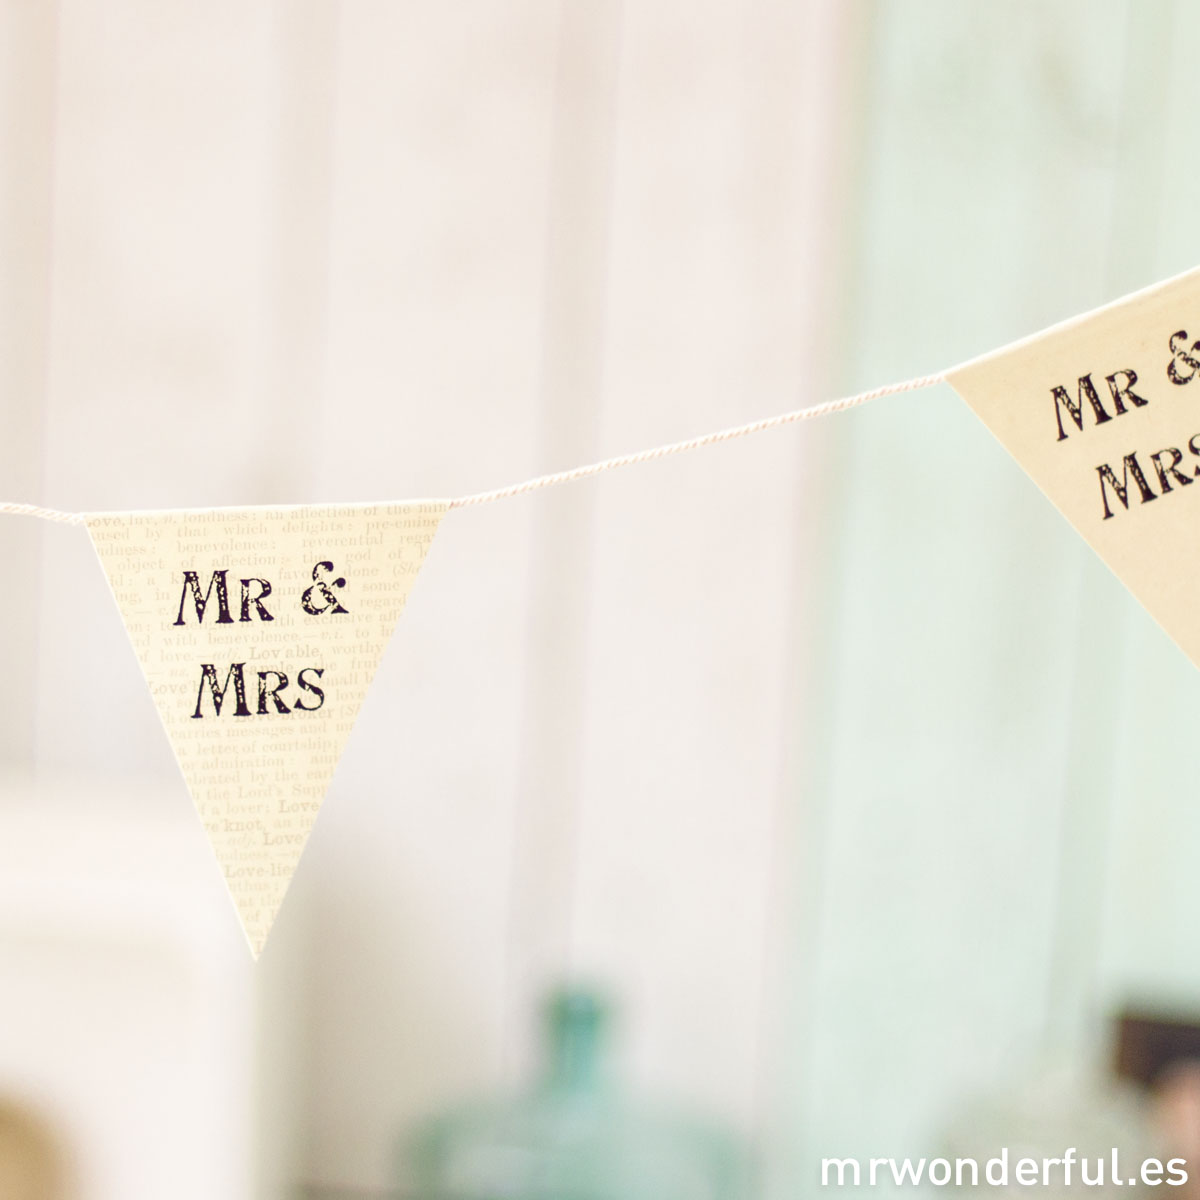 mrwonderful_620_banderines-paper_mr-mrs-9-2